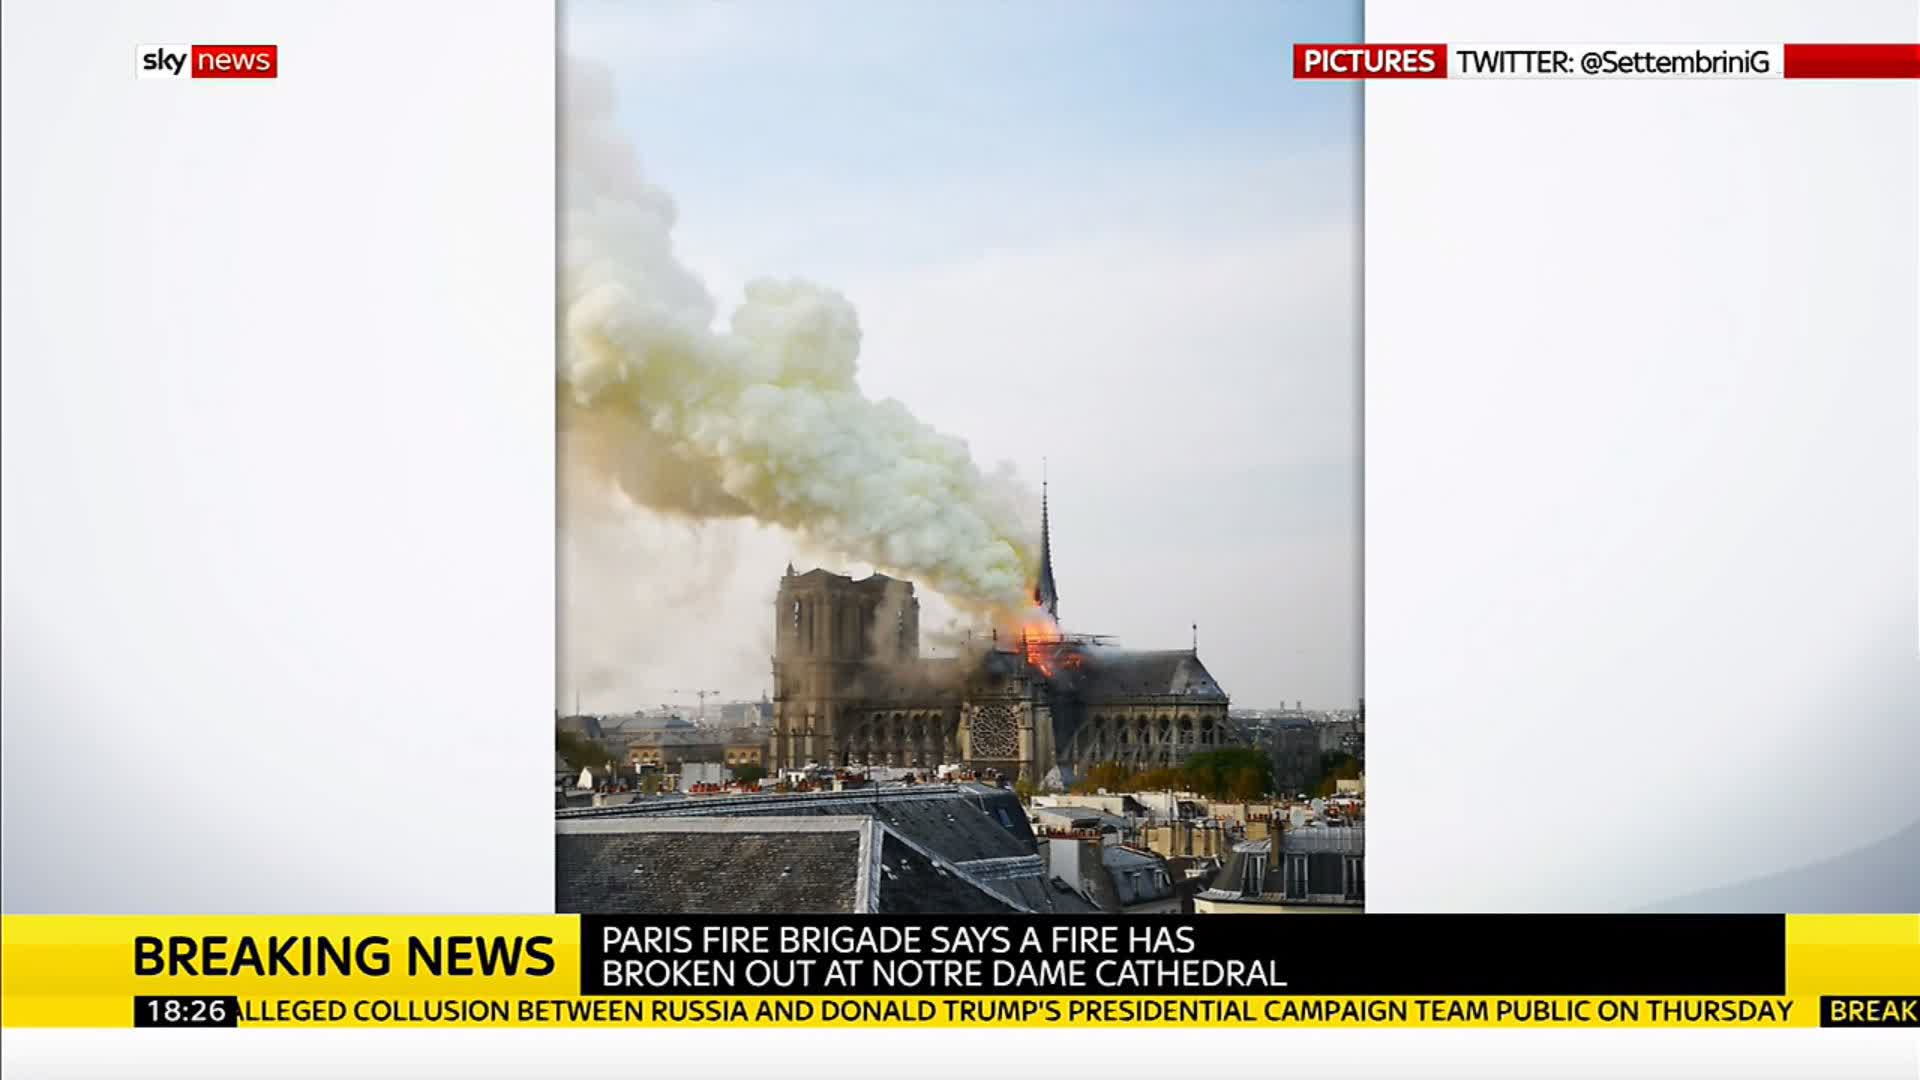 Another angle of the #Notredamefire by @skynews  The Art, the history, the heartbreaking loss.    https://t.co/VCIV7wr417